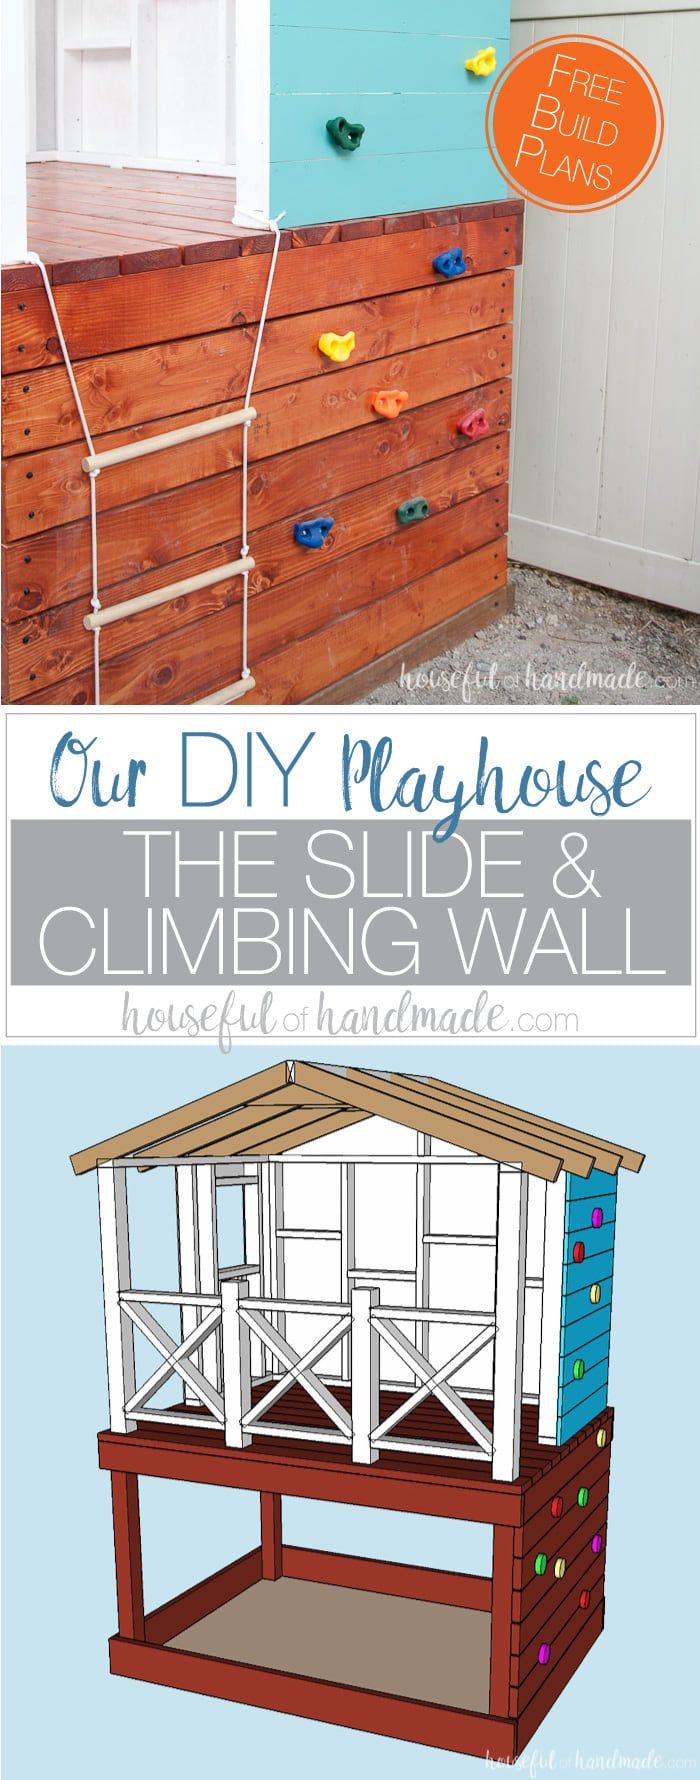 diy-playhouse-slide-climbing-wall-pinnable Cheap And Easy To Build Playhouse Plans on cheap easy bookshelf plans, easy chicken coop plans, cheap easy tree house plans, free&easy cabin plans, cheap playhouse ideas,